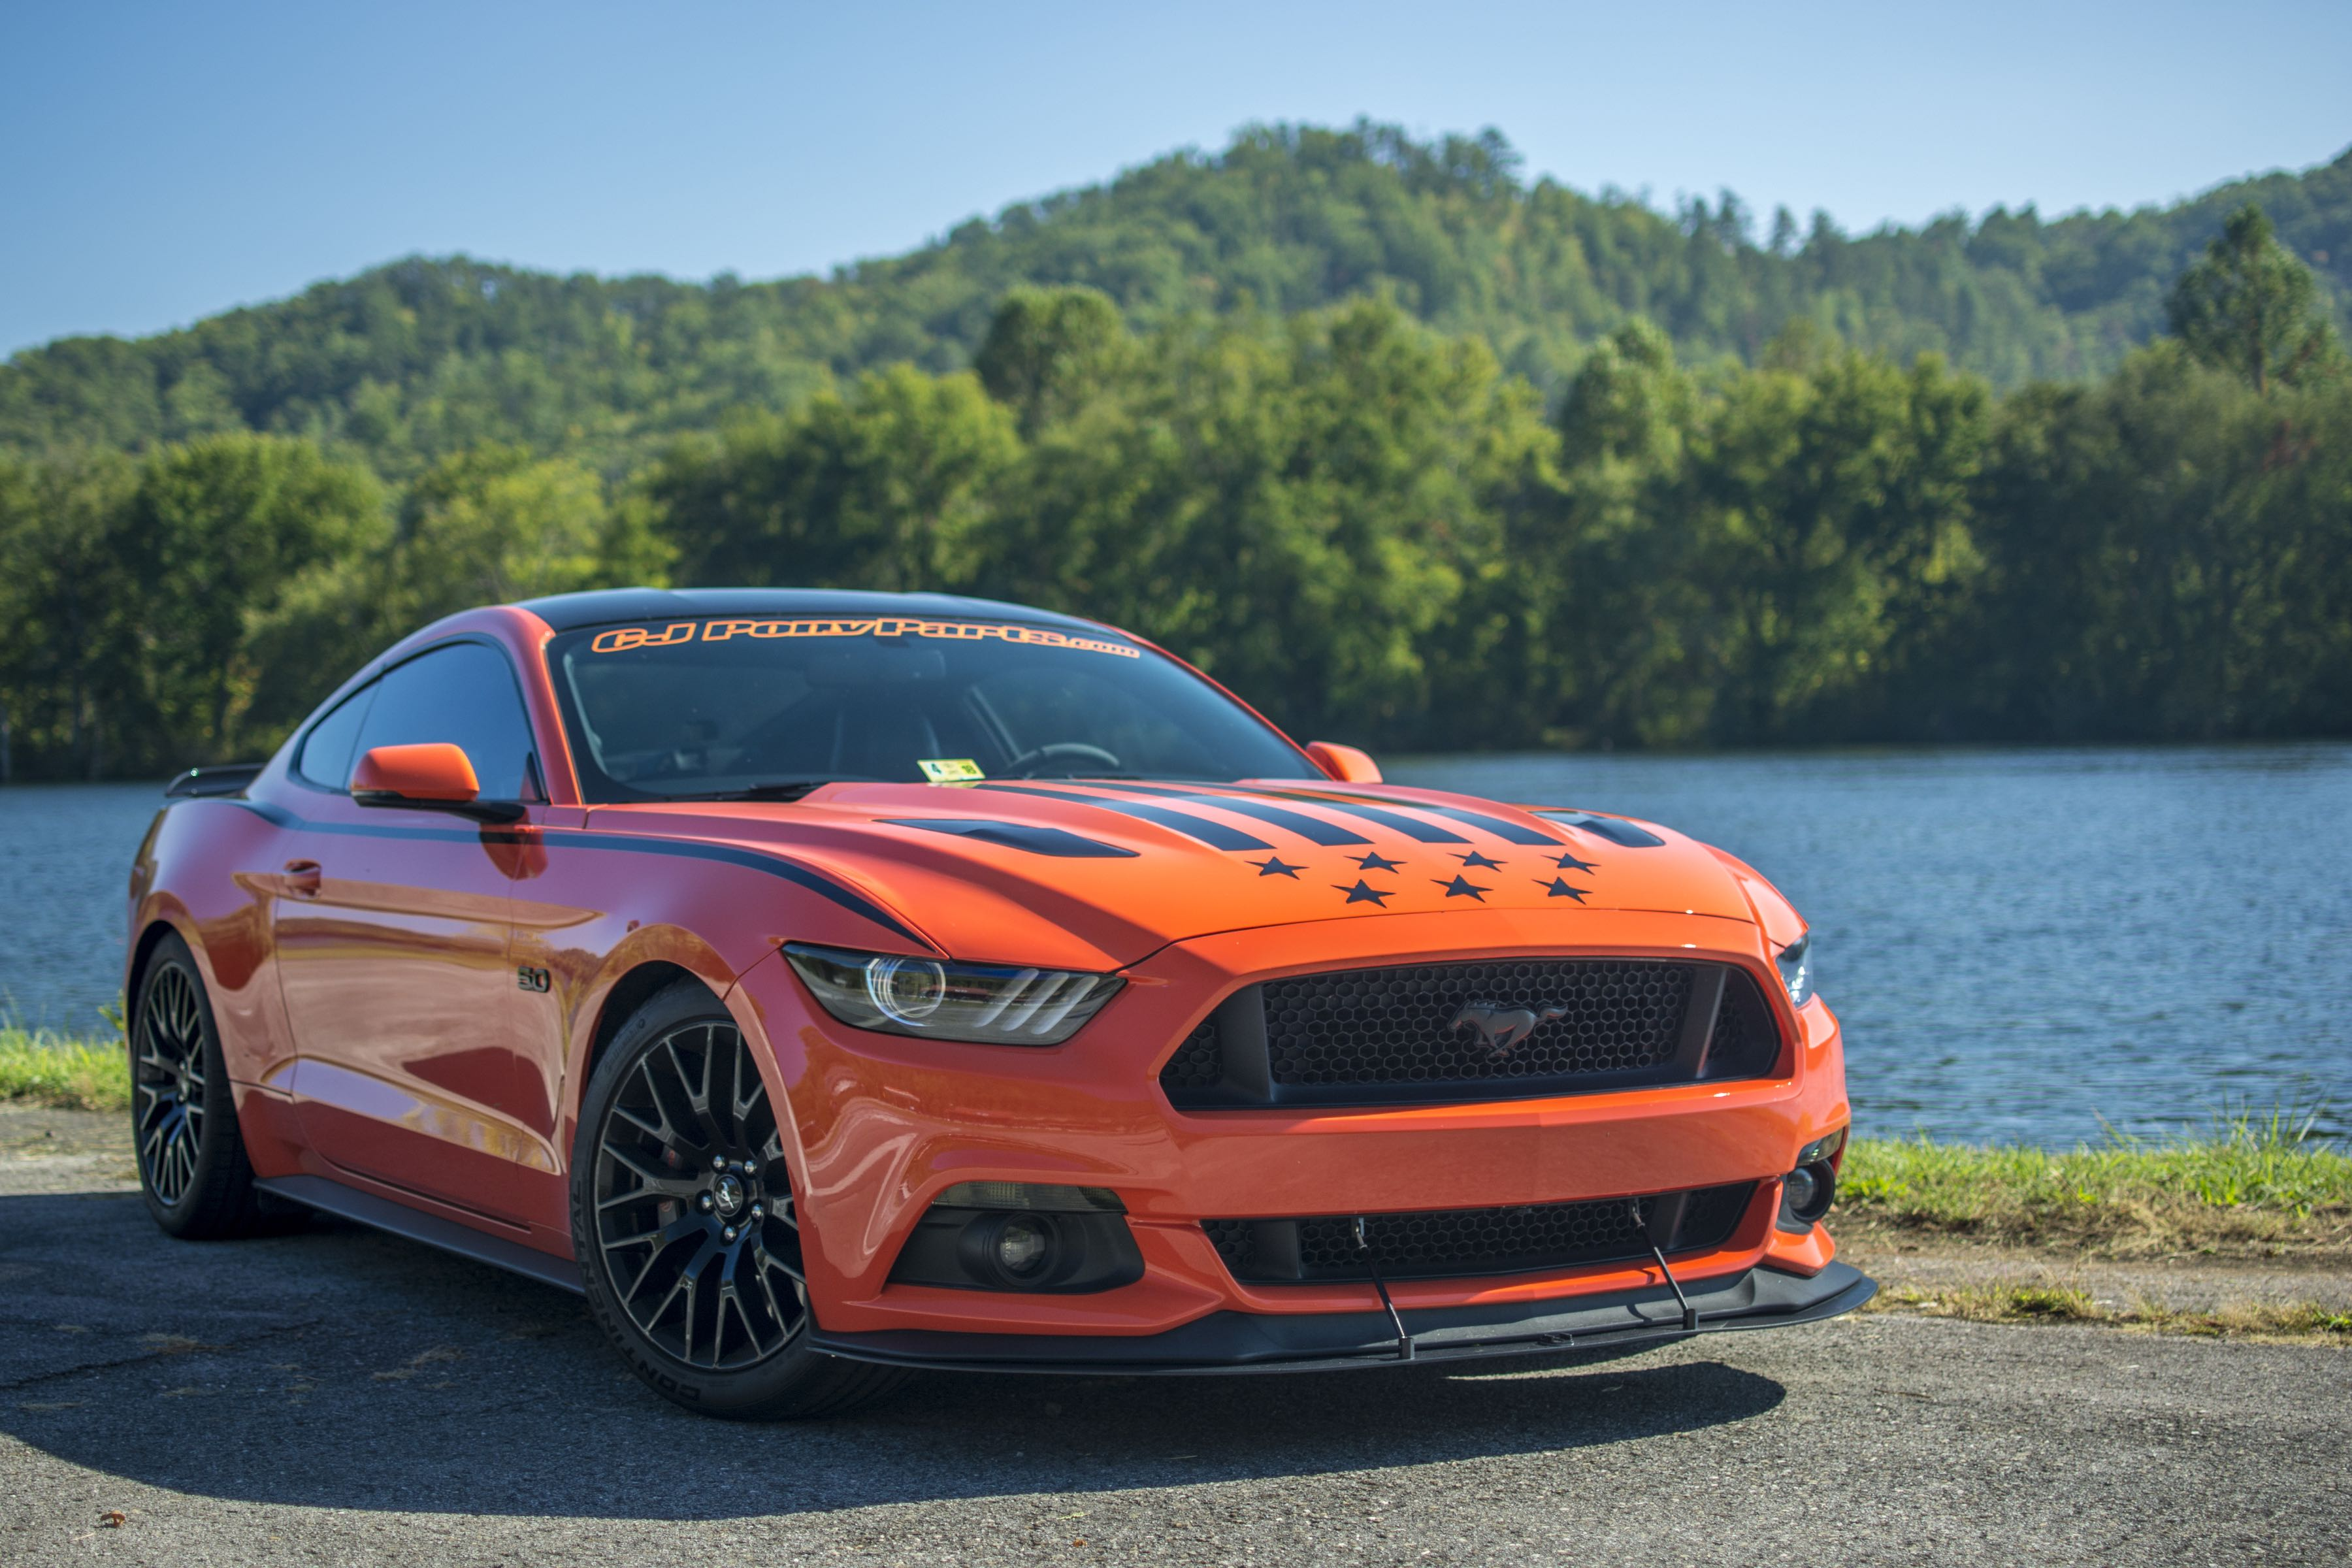 Taming The Dragon In A Bolt-On 2015 Mustang GT